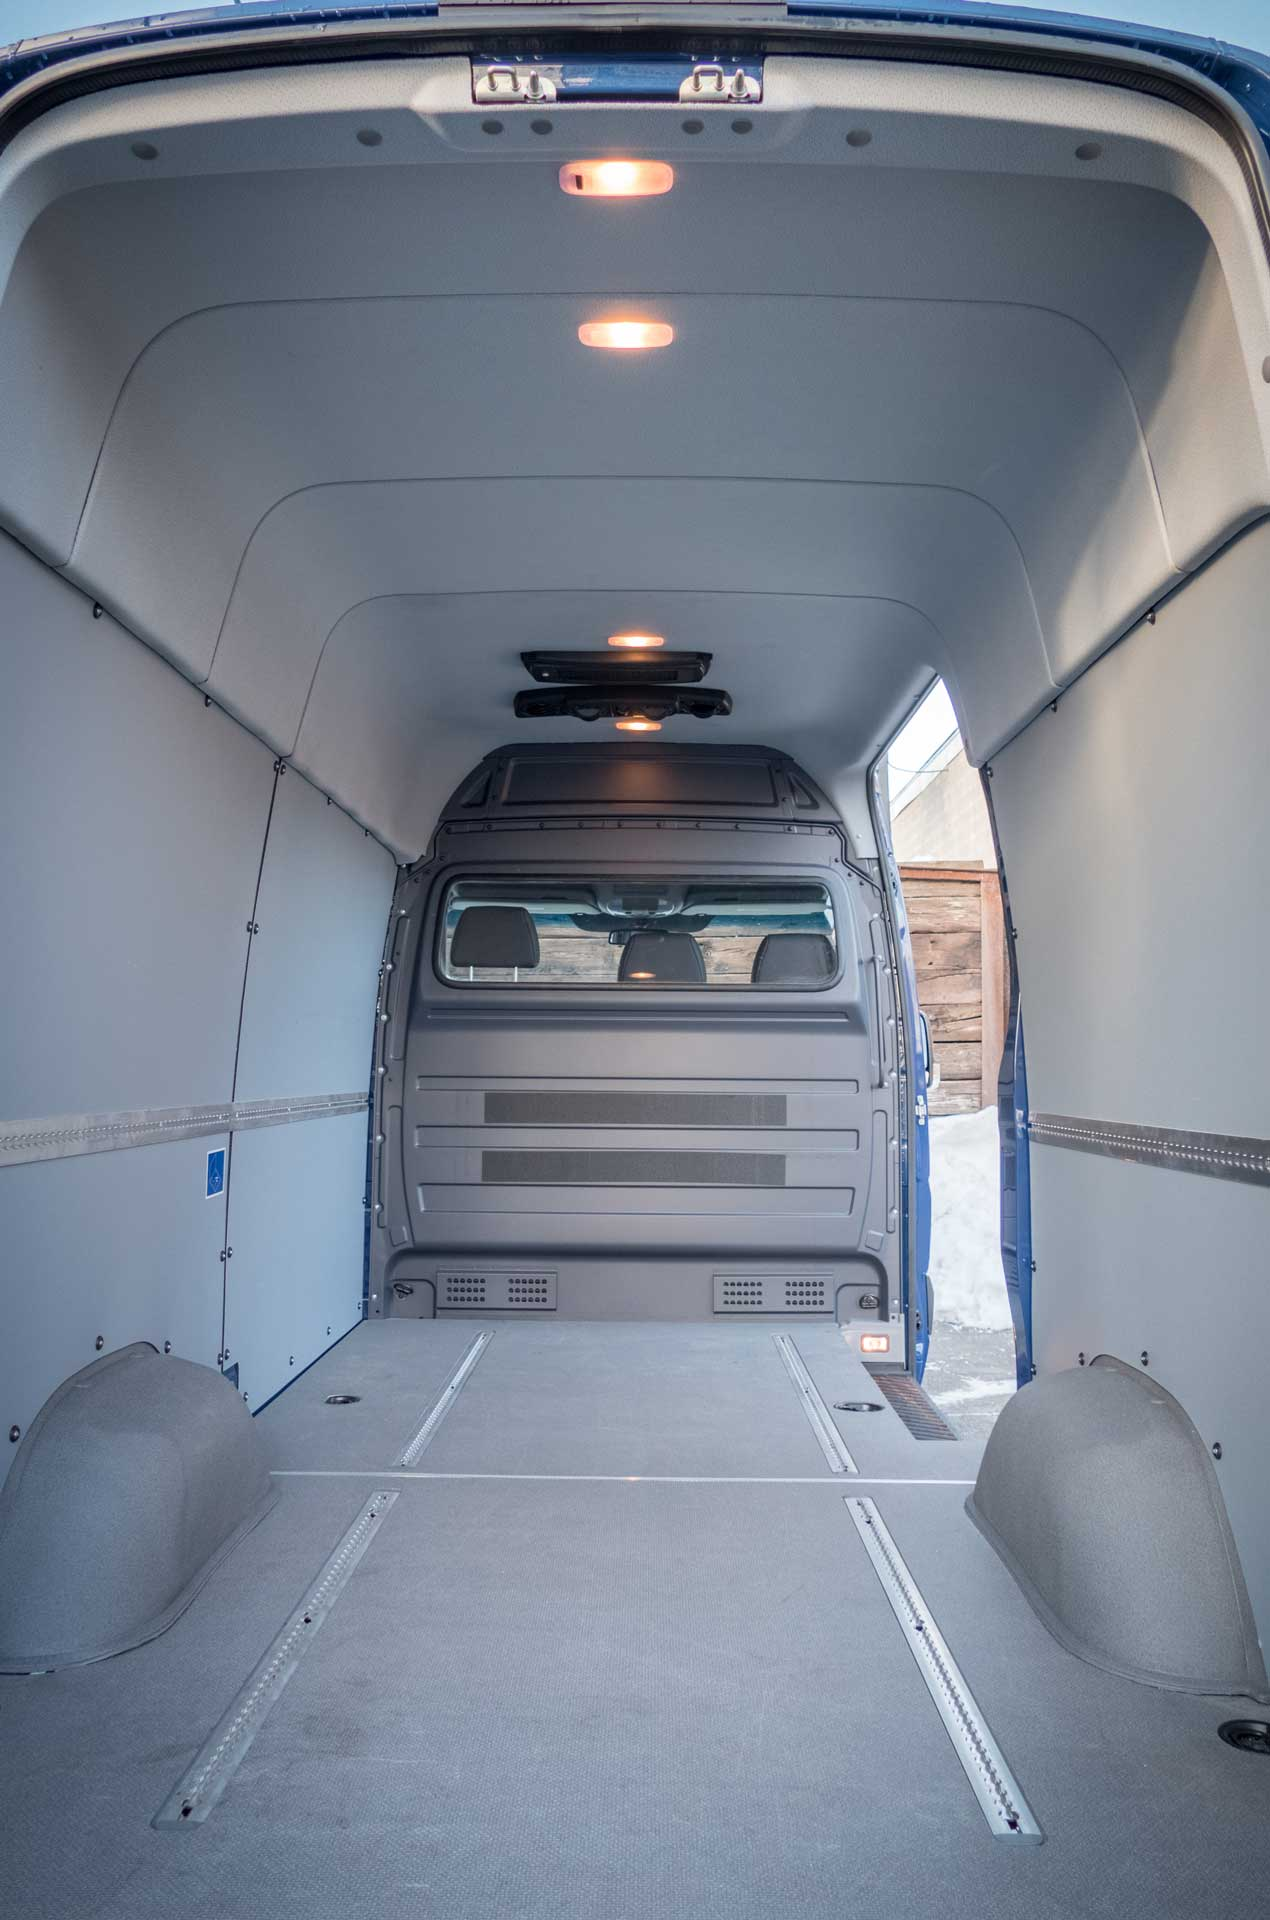 Budget friendly RedDOT rear cargo HVAC for Sprinter Transit